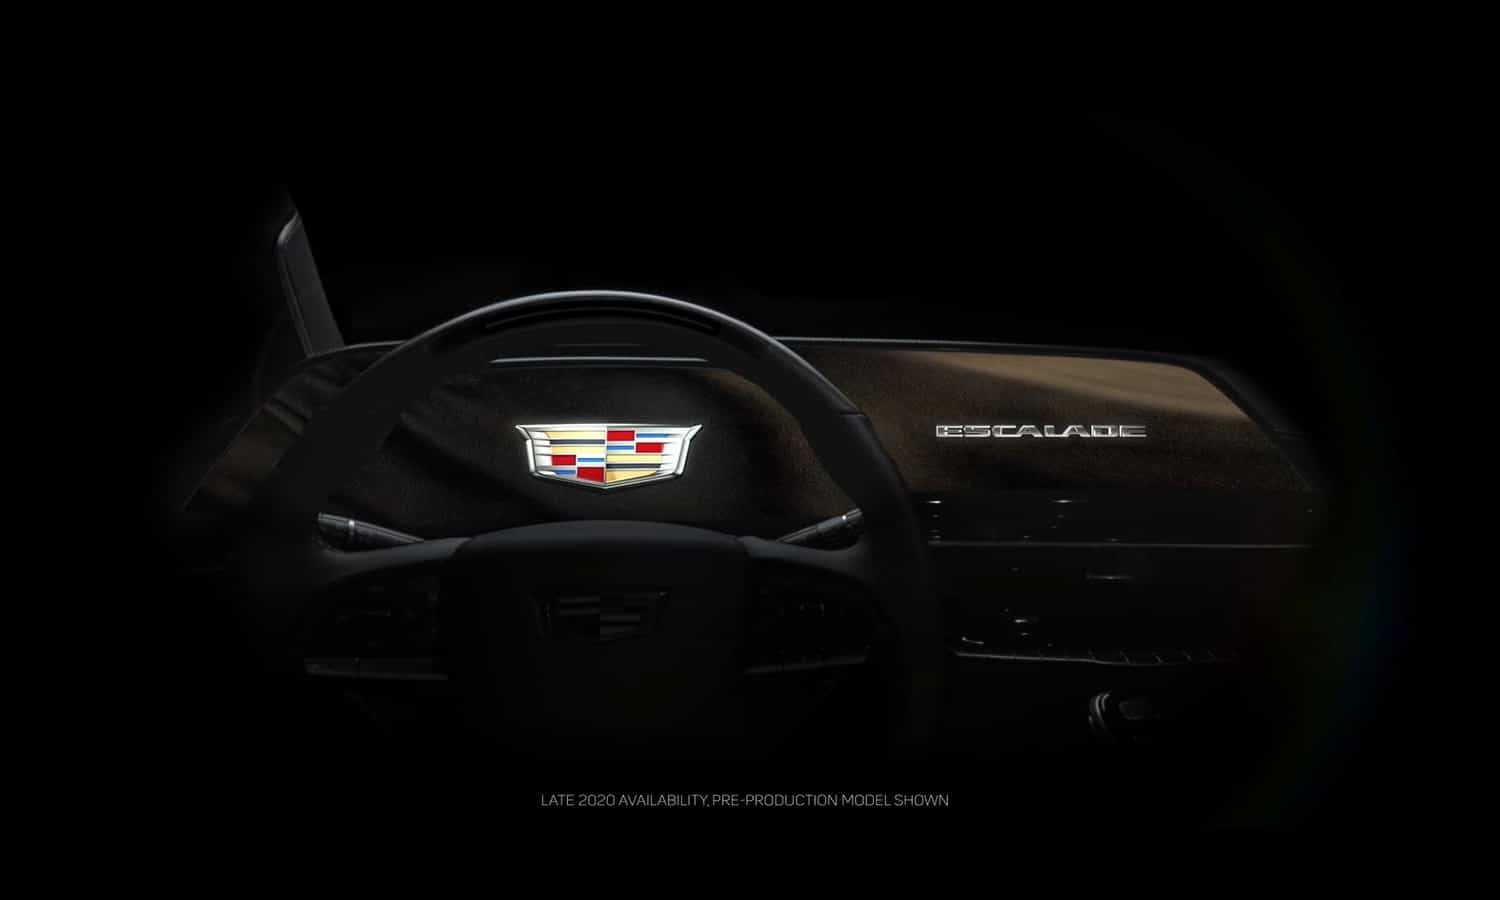 Cadillac Escalade 2021 screen OLED teaser